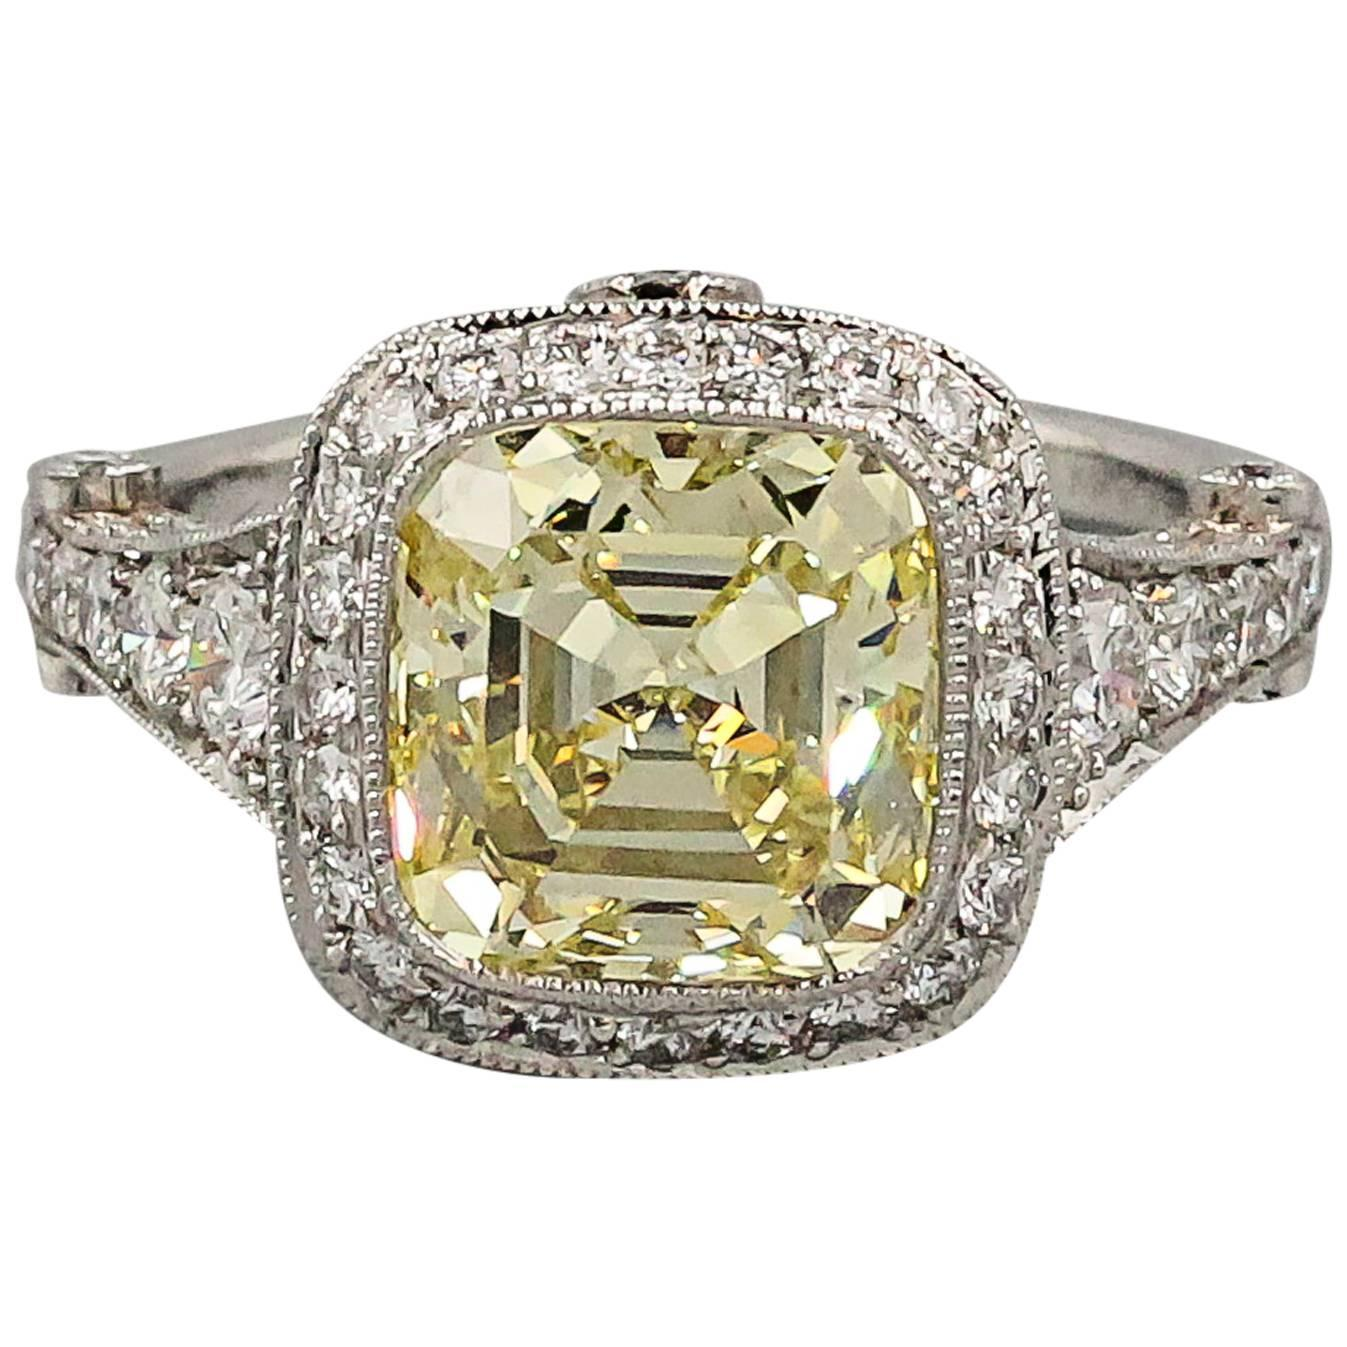 Tiffany and Co Legacy Fancy Yellow Diamond Platinum Ring For Sale at 1stdibs